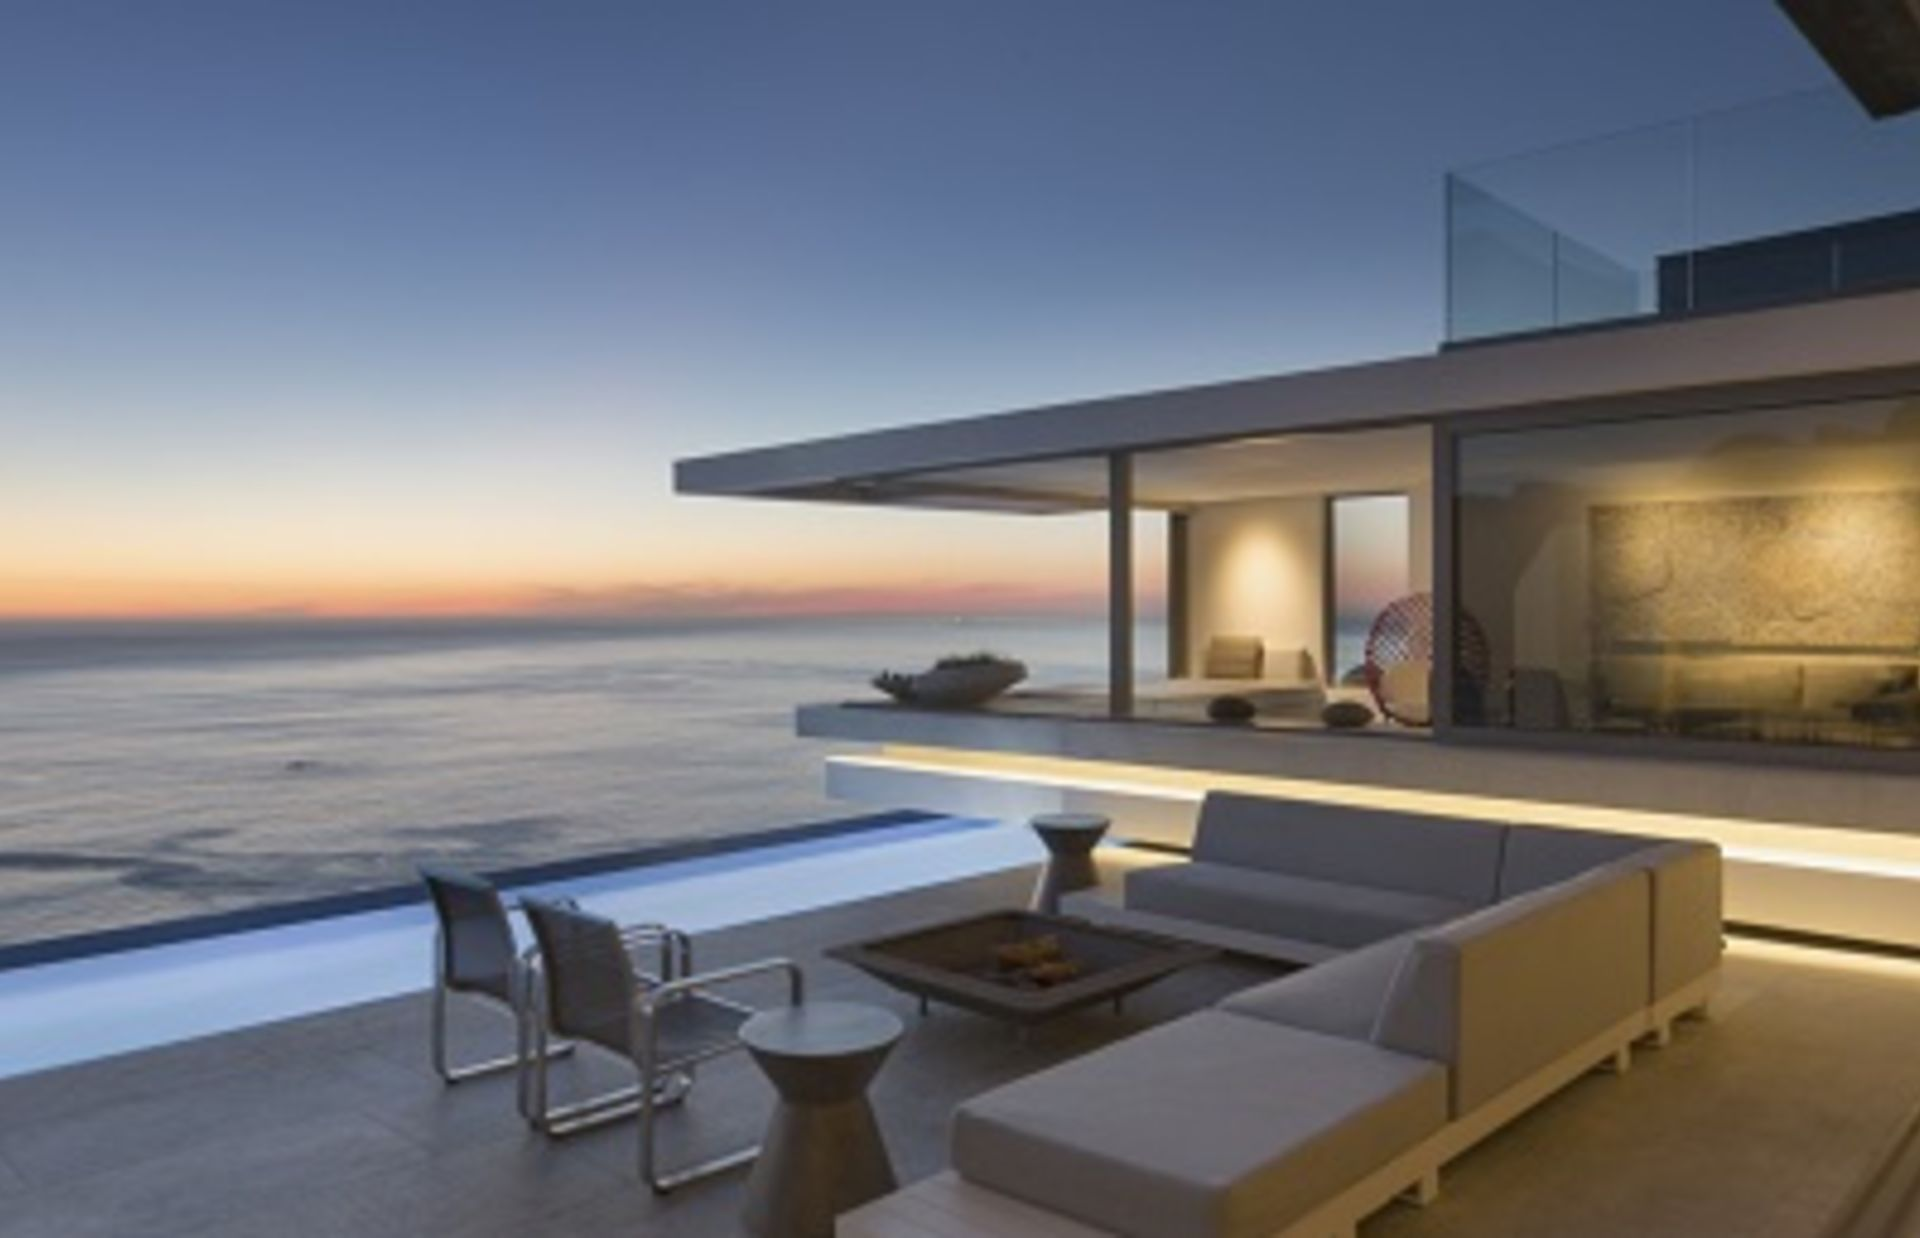 Fast-Paced Luxury Sales Raise Entry-Level Price Point